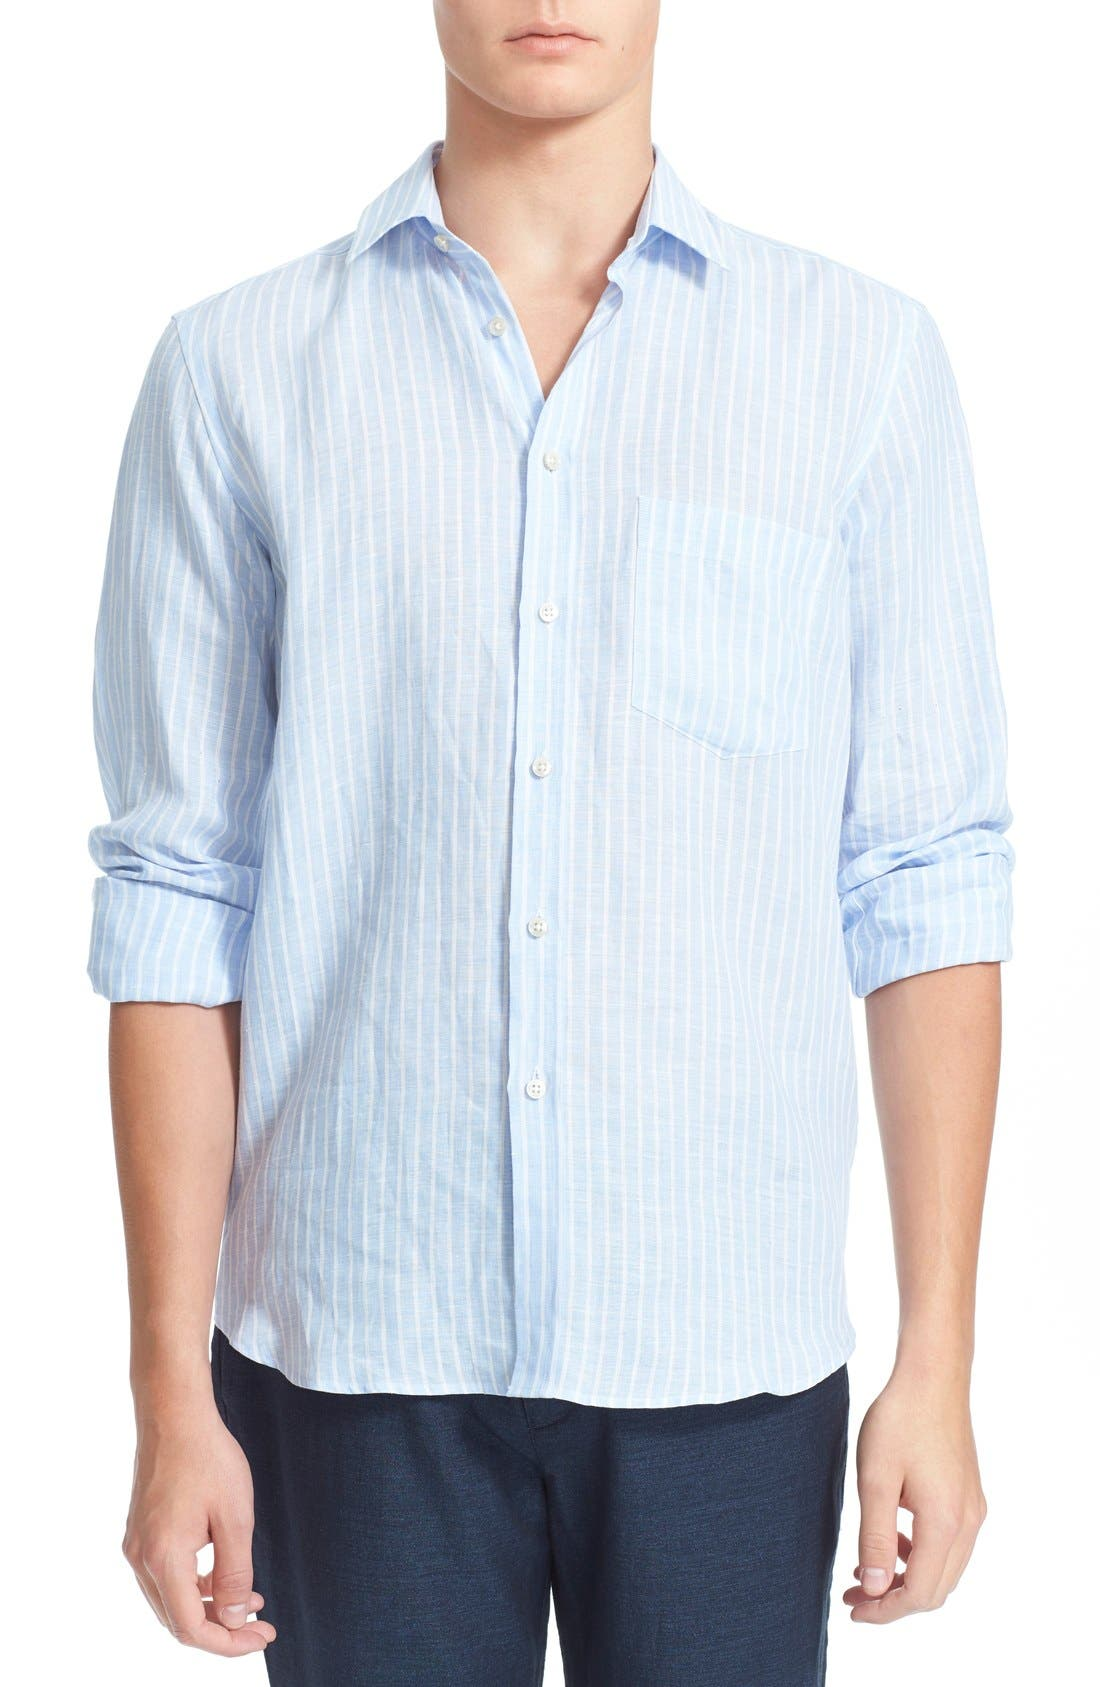 Vilebrequin 'Carrix' Trim Fit Stripe Linen Shirt